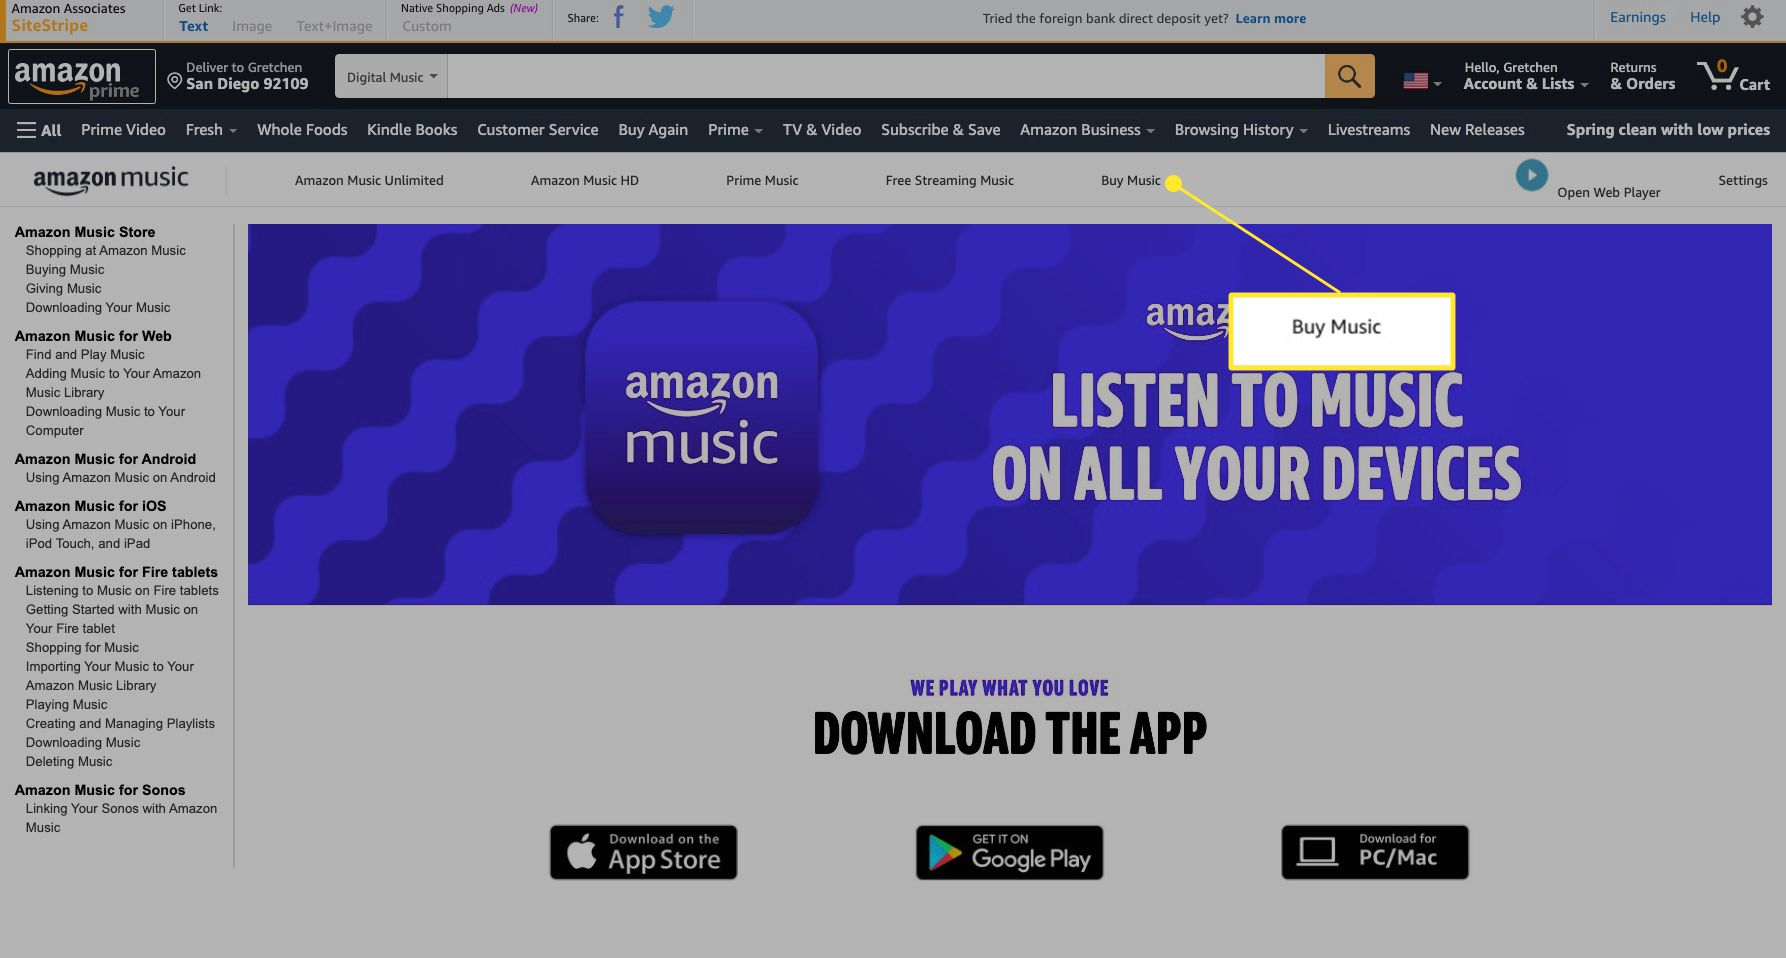 Amazon Music web page with Buy Music highlighted